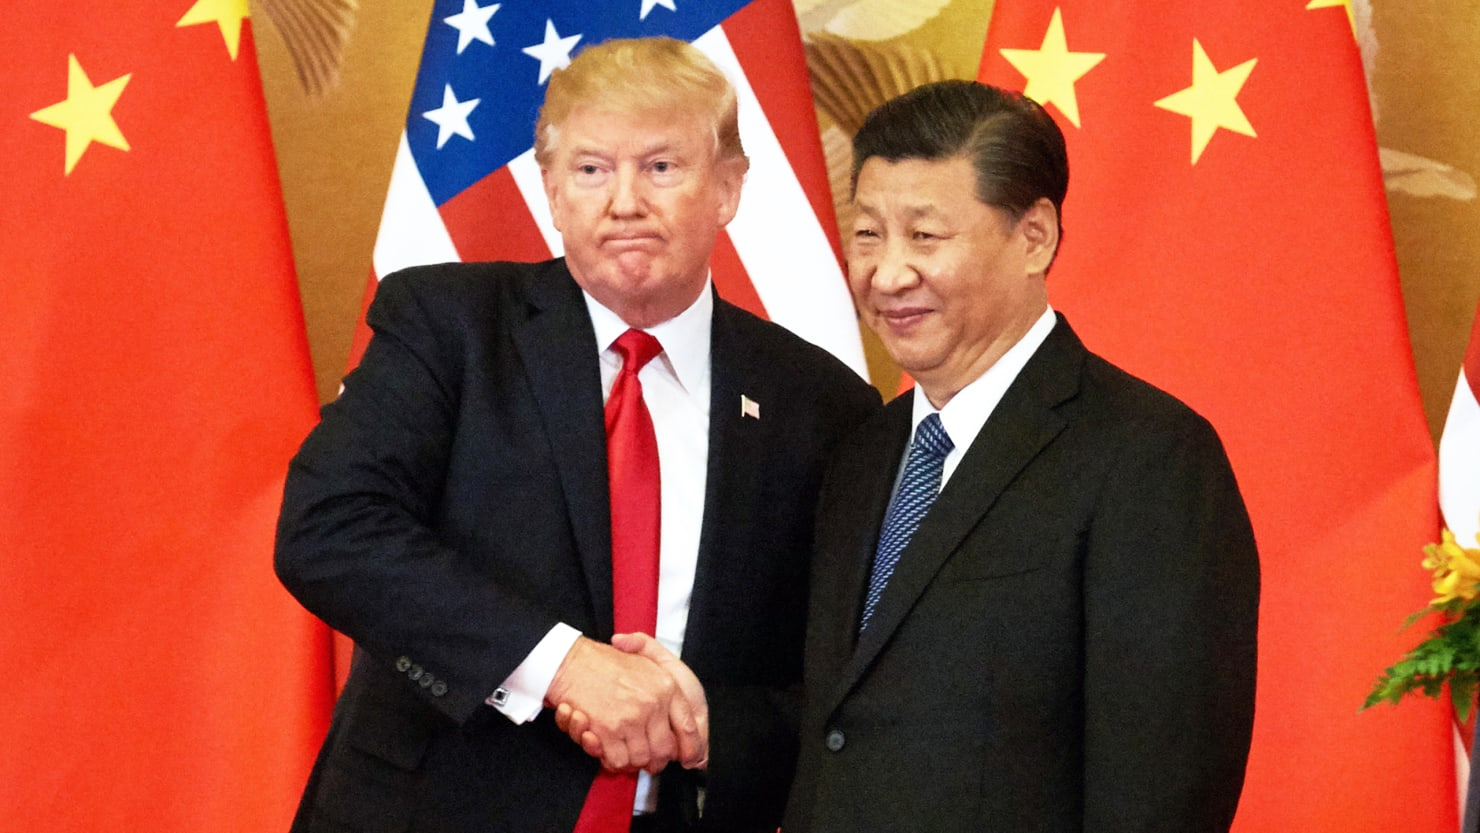 Spooked Republicans Scramble to Tie Trump's Hands on China ...